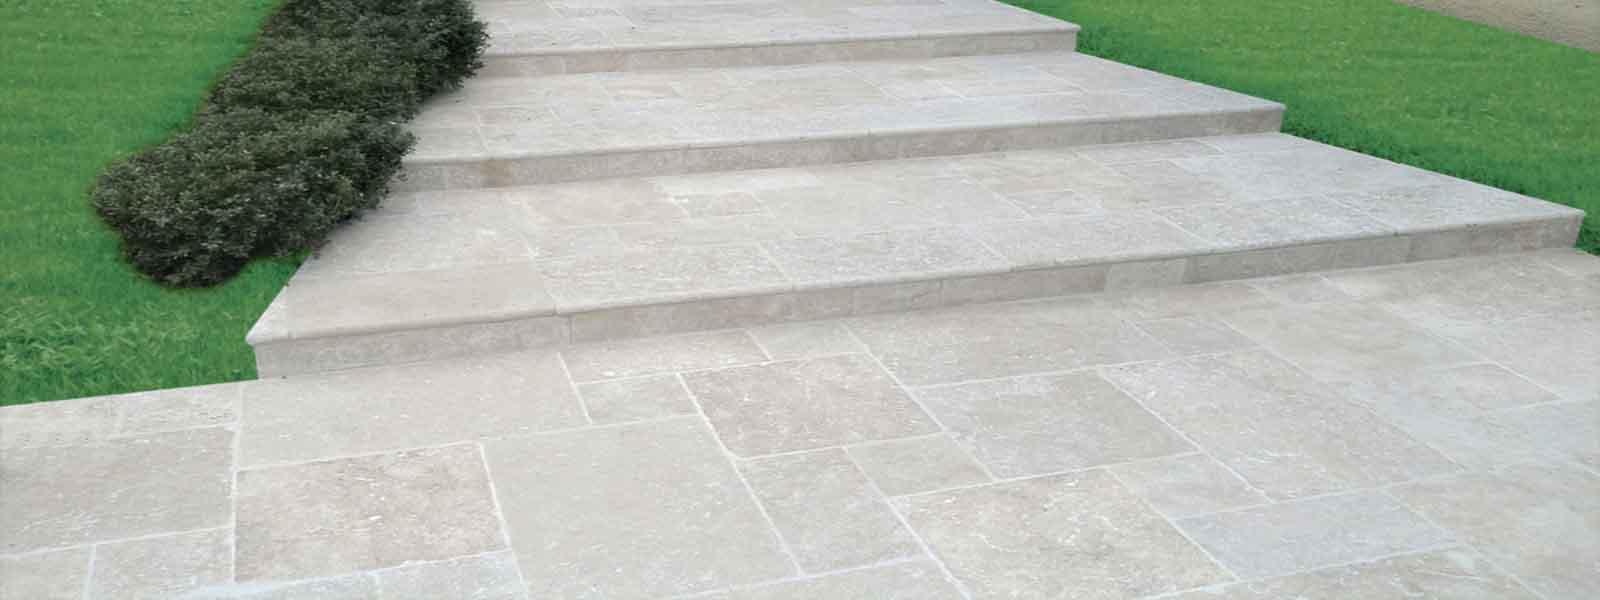 Epaisseur colle carrelage exterieur for Carrelage decoratif exterieur